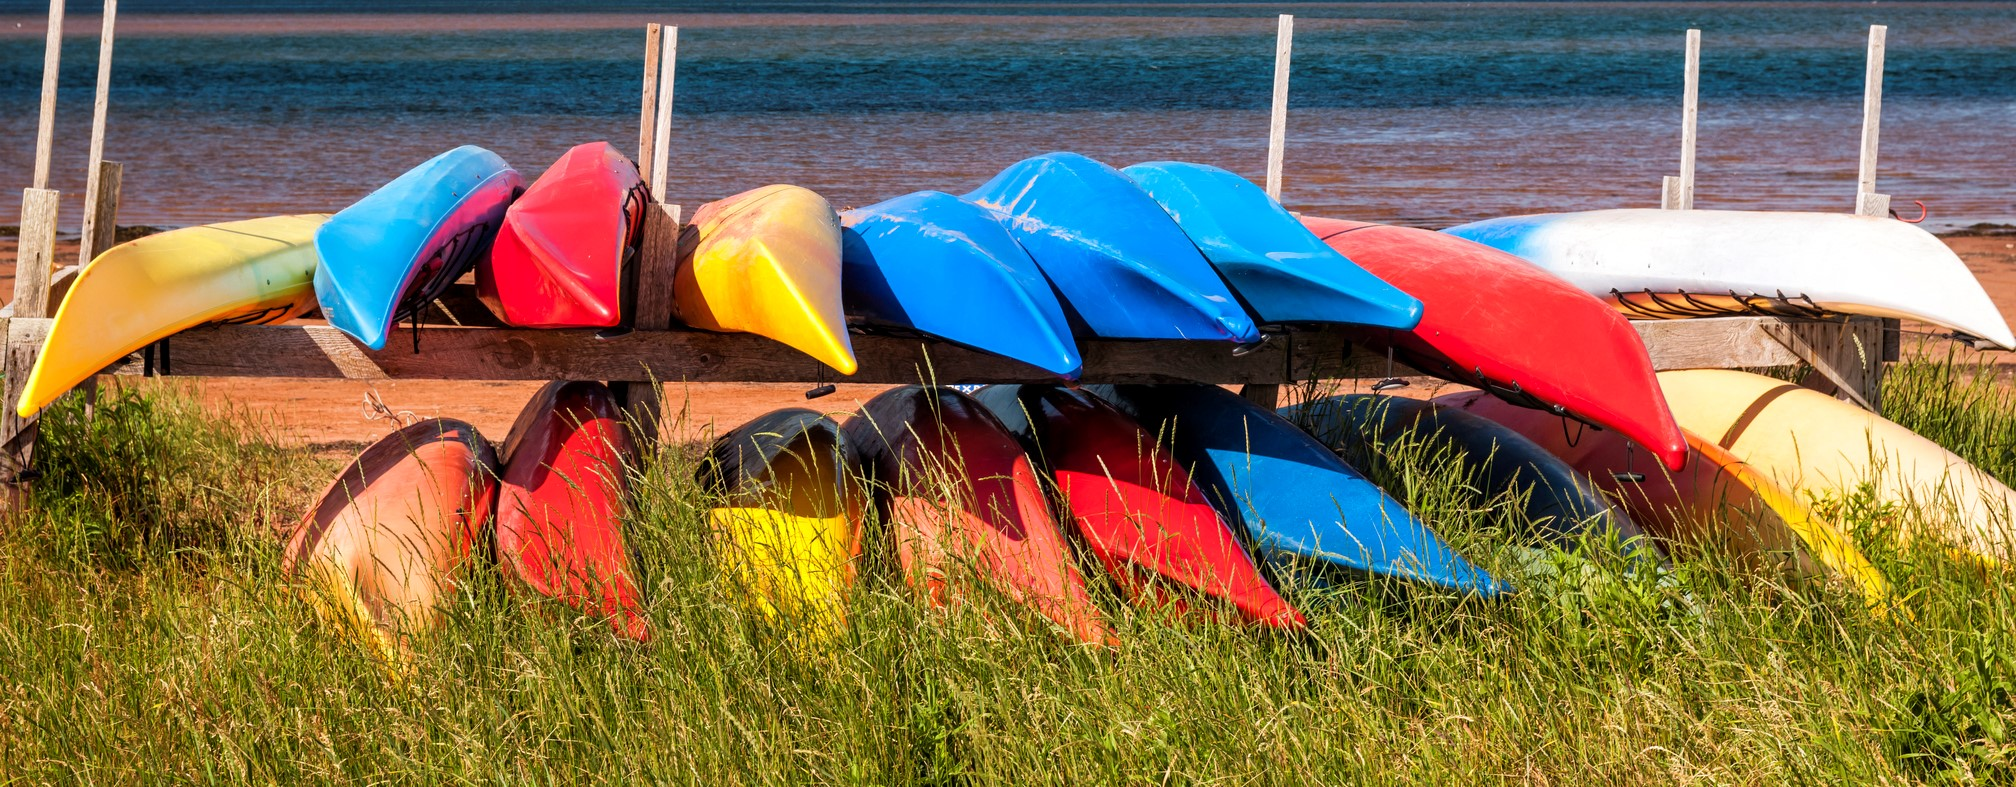 Colorful kayaks stored on Atlantic shore in North Rustico, Prince Edward Island, Canada